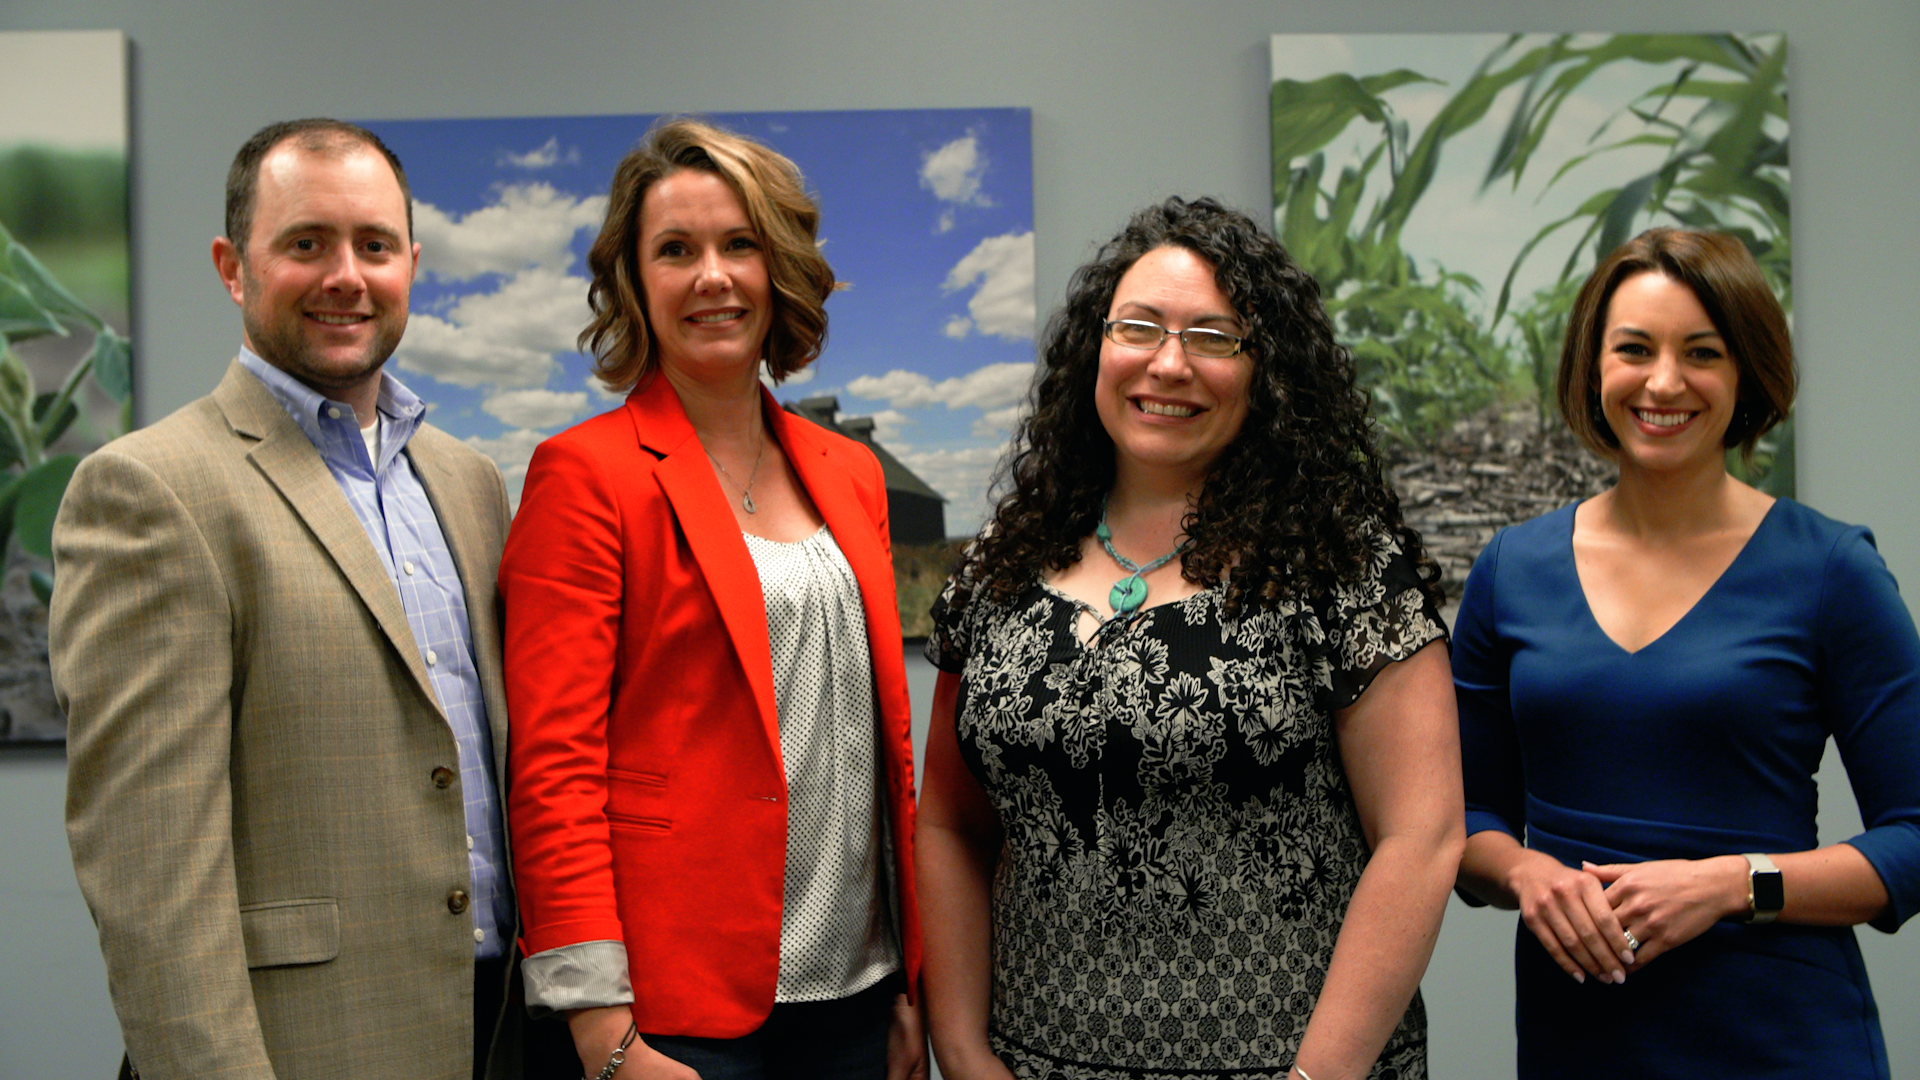 (Pictured from left to right: Brett Haas, Crop Copter Co-owner and Sales Manager, Angie Barnard, Illinois 4-H Foundation Executive Director, Lisa Bouillion Diaz, Illinois 4-H Director, and Cynthia Bruno, Agrible, Inc. Chief Strategy Officer.)